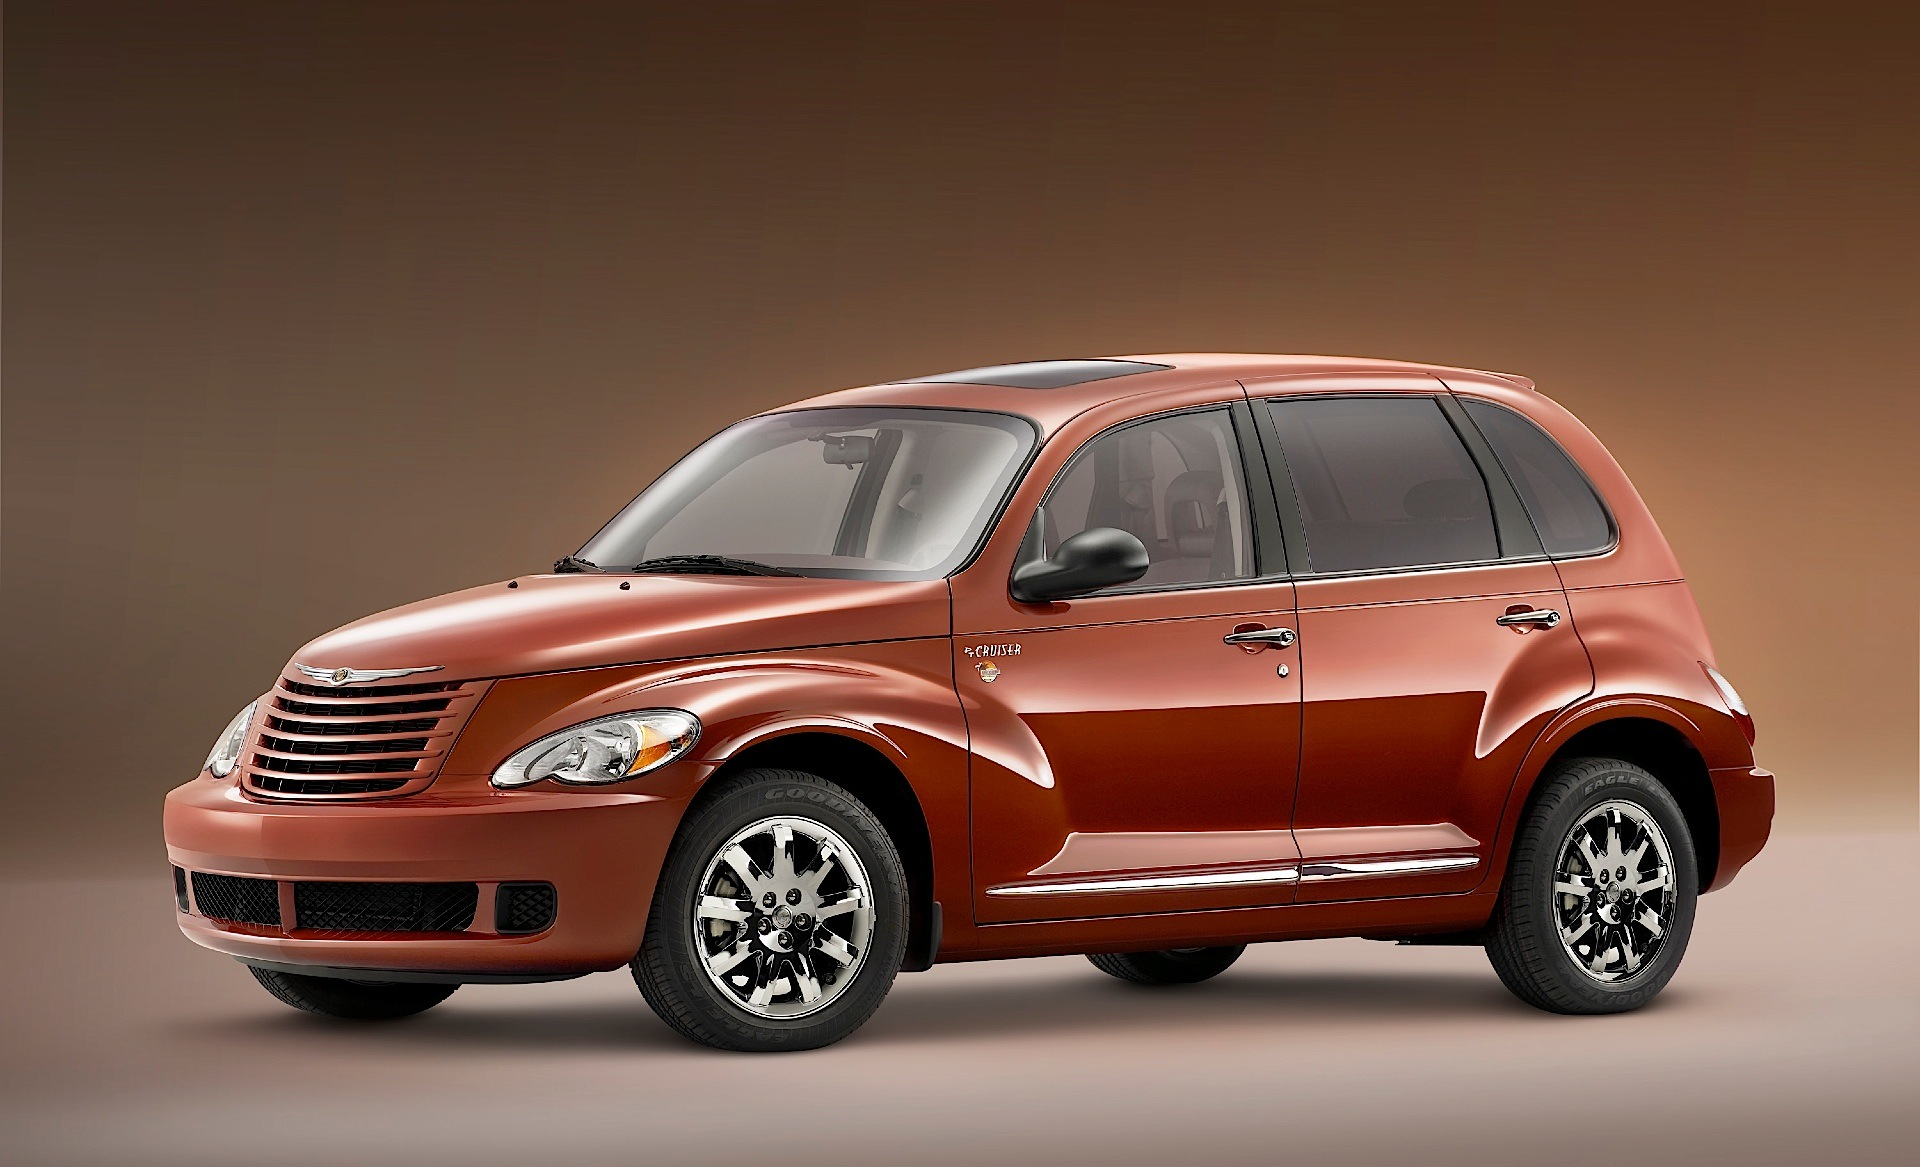 chrysler pt cruiser specs photos 2006 2007 2008 2009 2010 autoevolution. Black Bedroom Furniture Sets. Home Design Ideas